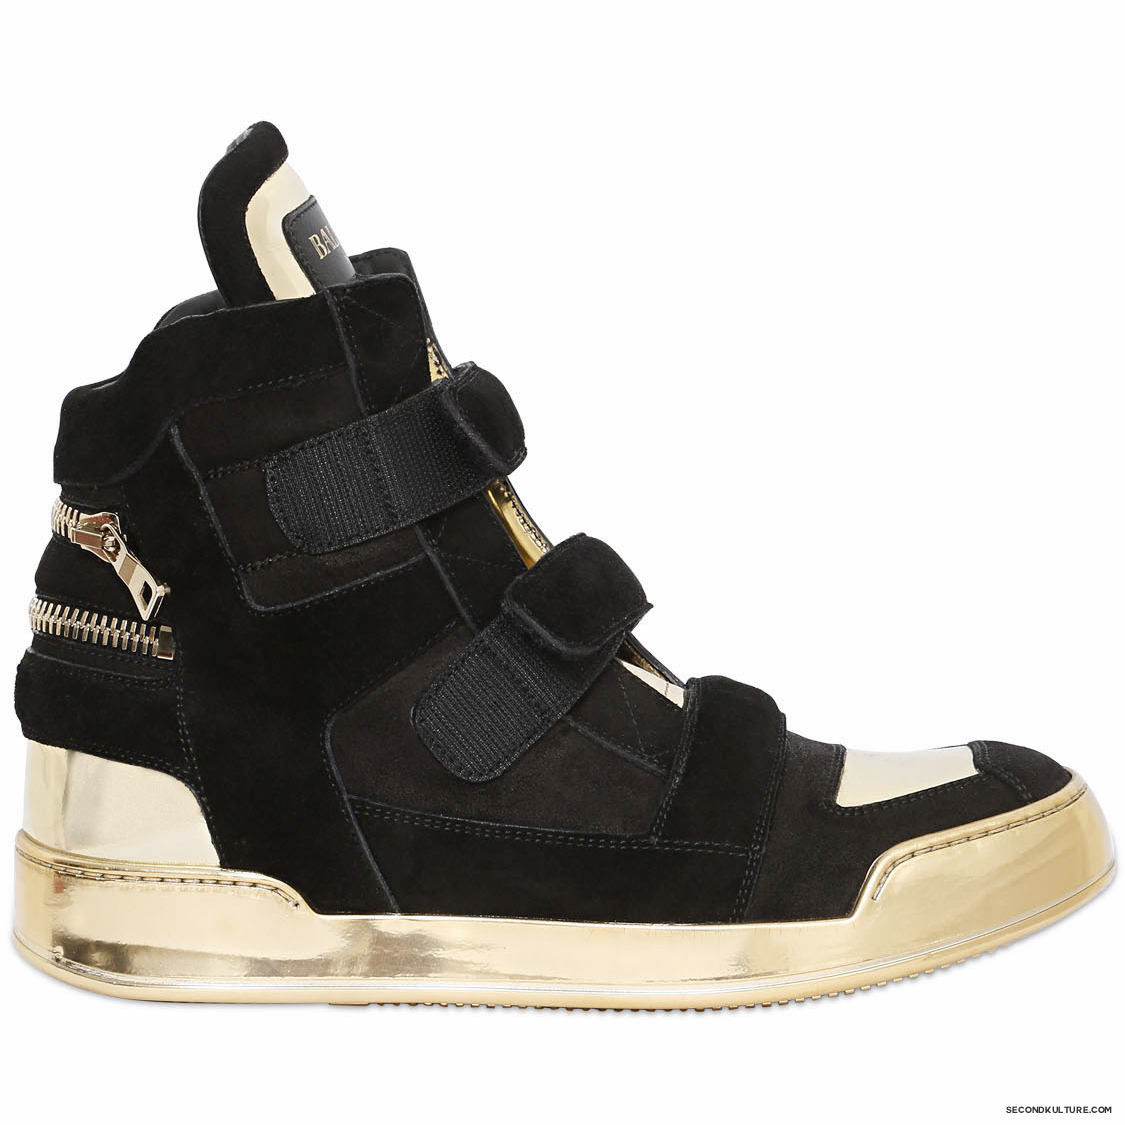 Balmain-Black-and-Gold-Crust-Suede-Velcro-High-Top-Sneakers-Fall-Winter-2015-1